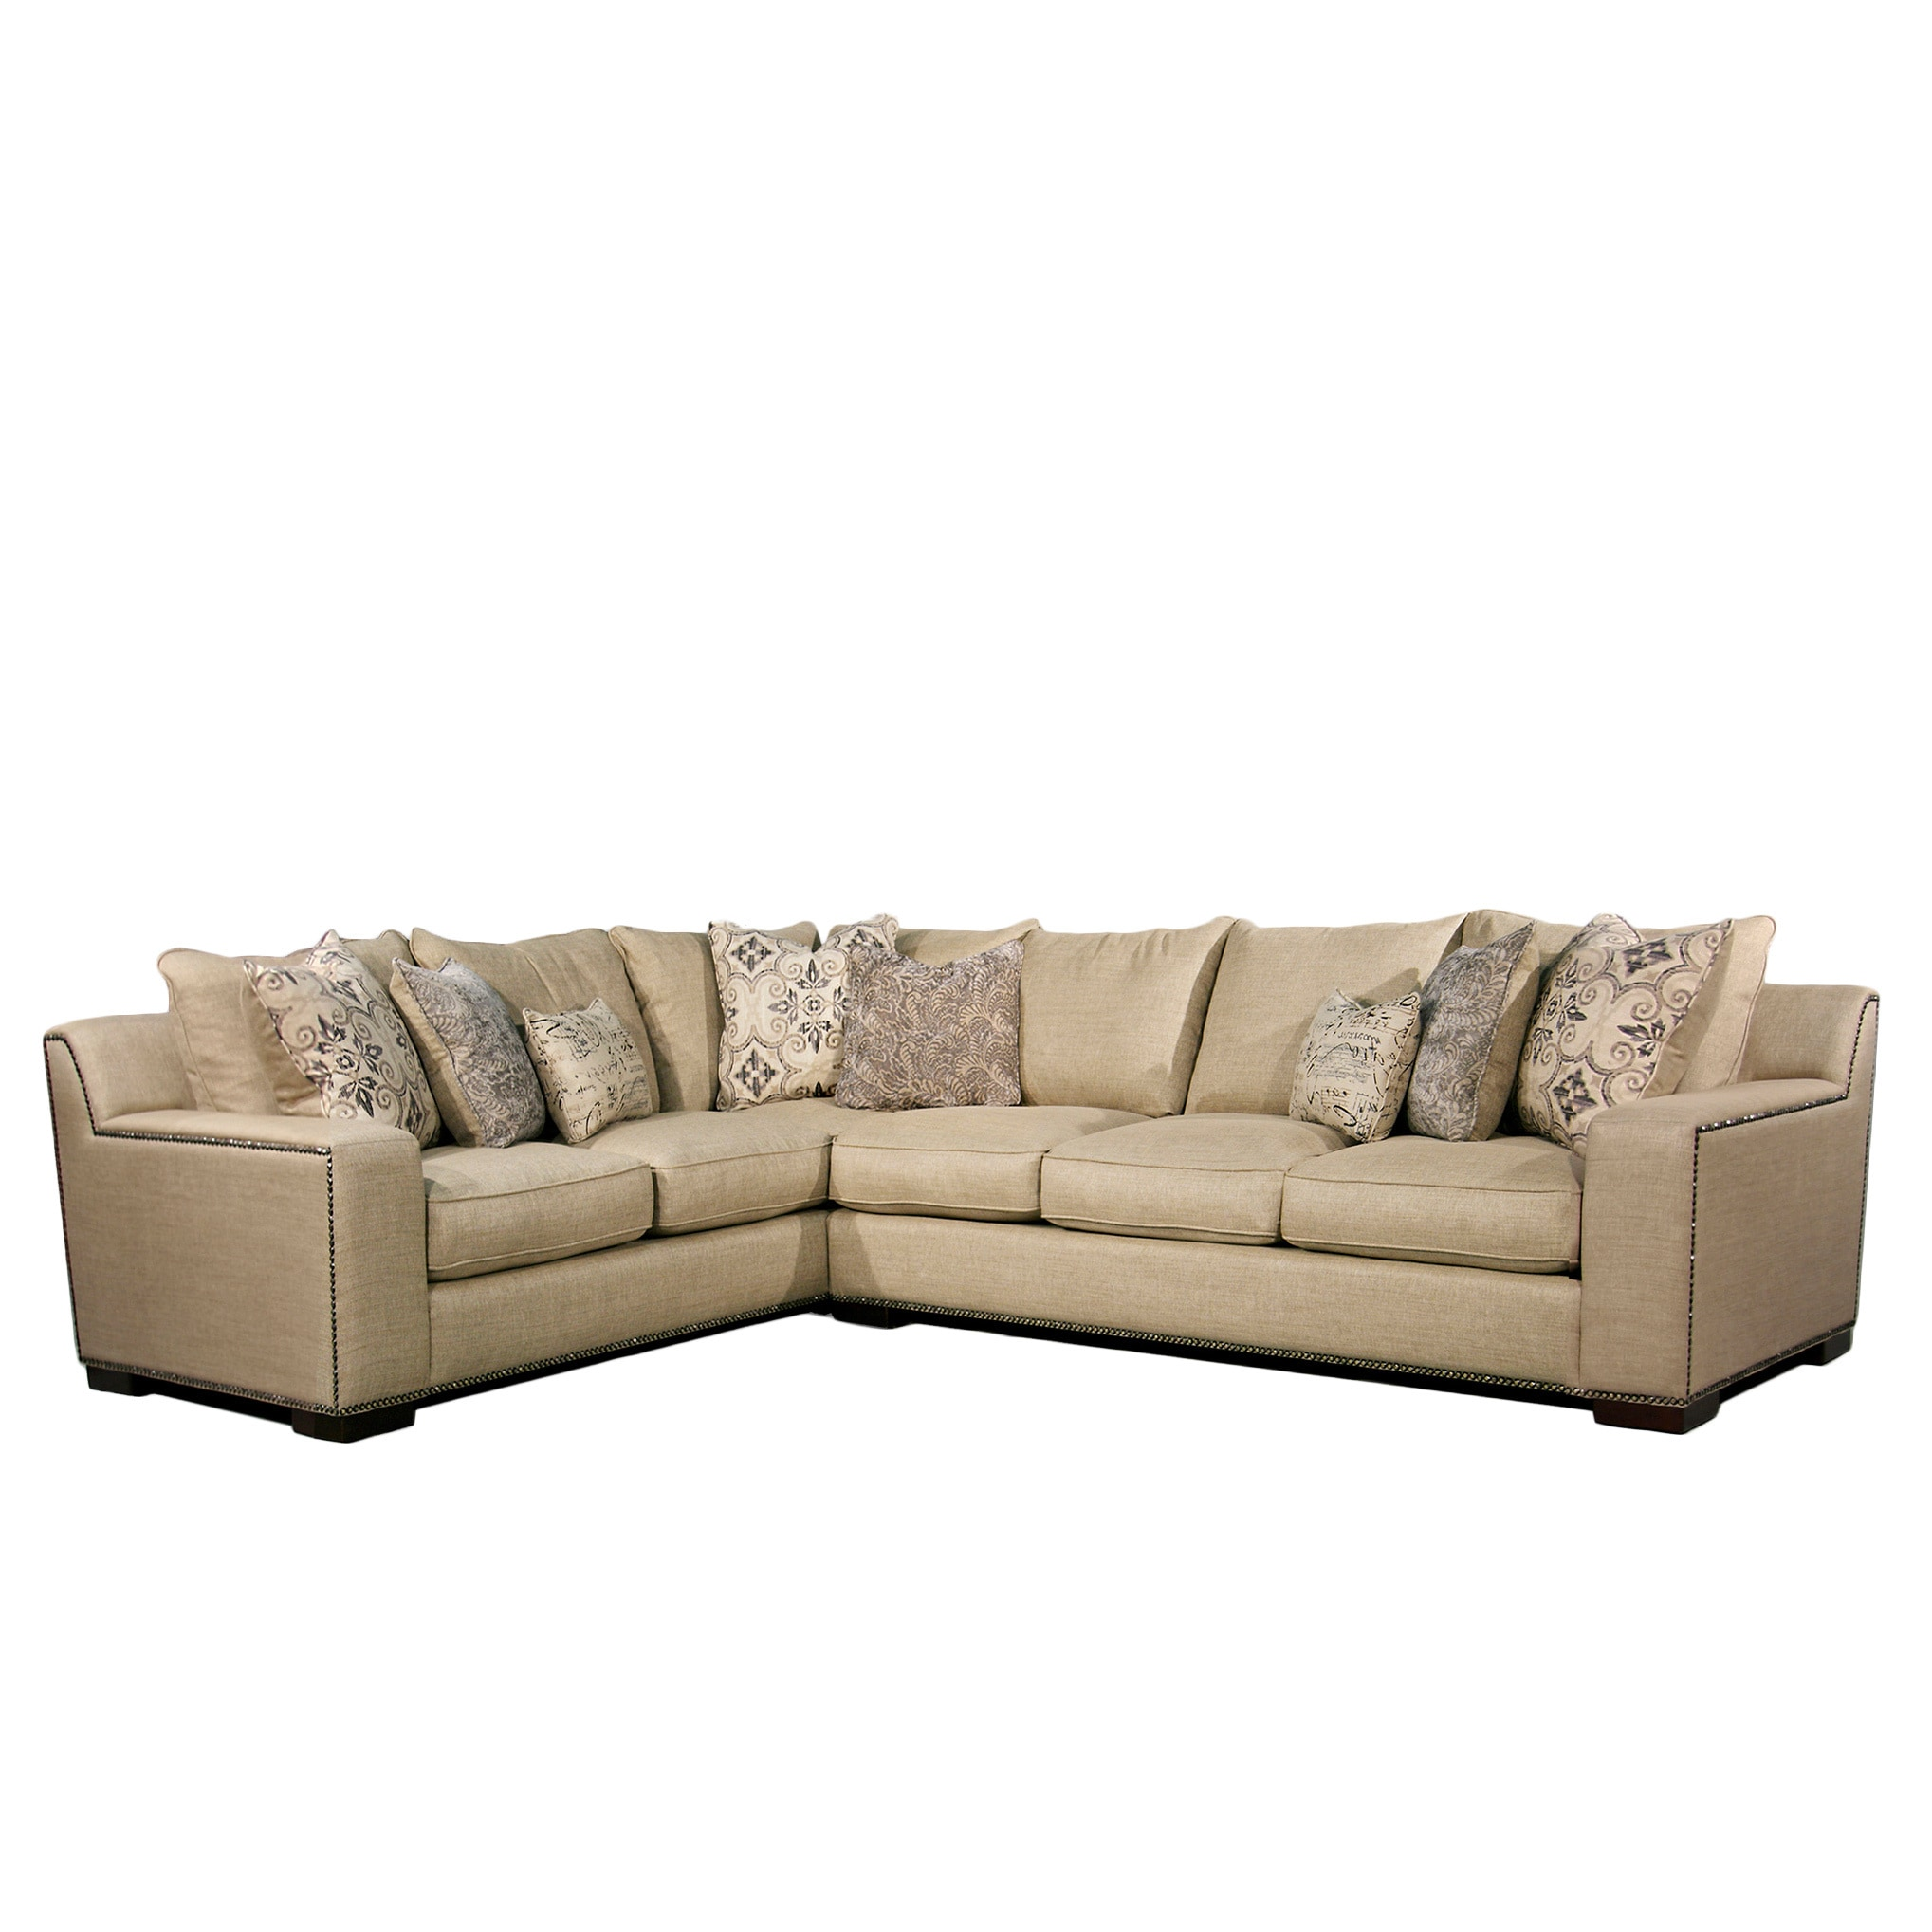 Pleasing Fairmont Designs Made To Order Adele Two Piece Sectional Set Ncnpc Chair Design For Home Ncnpcorg